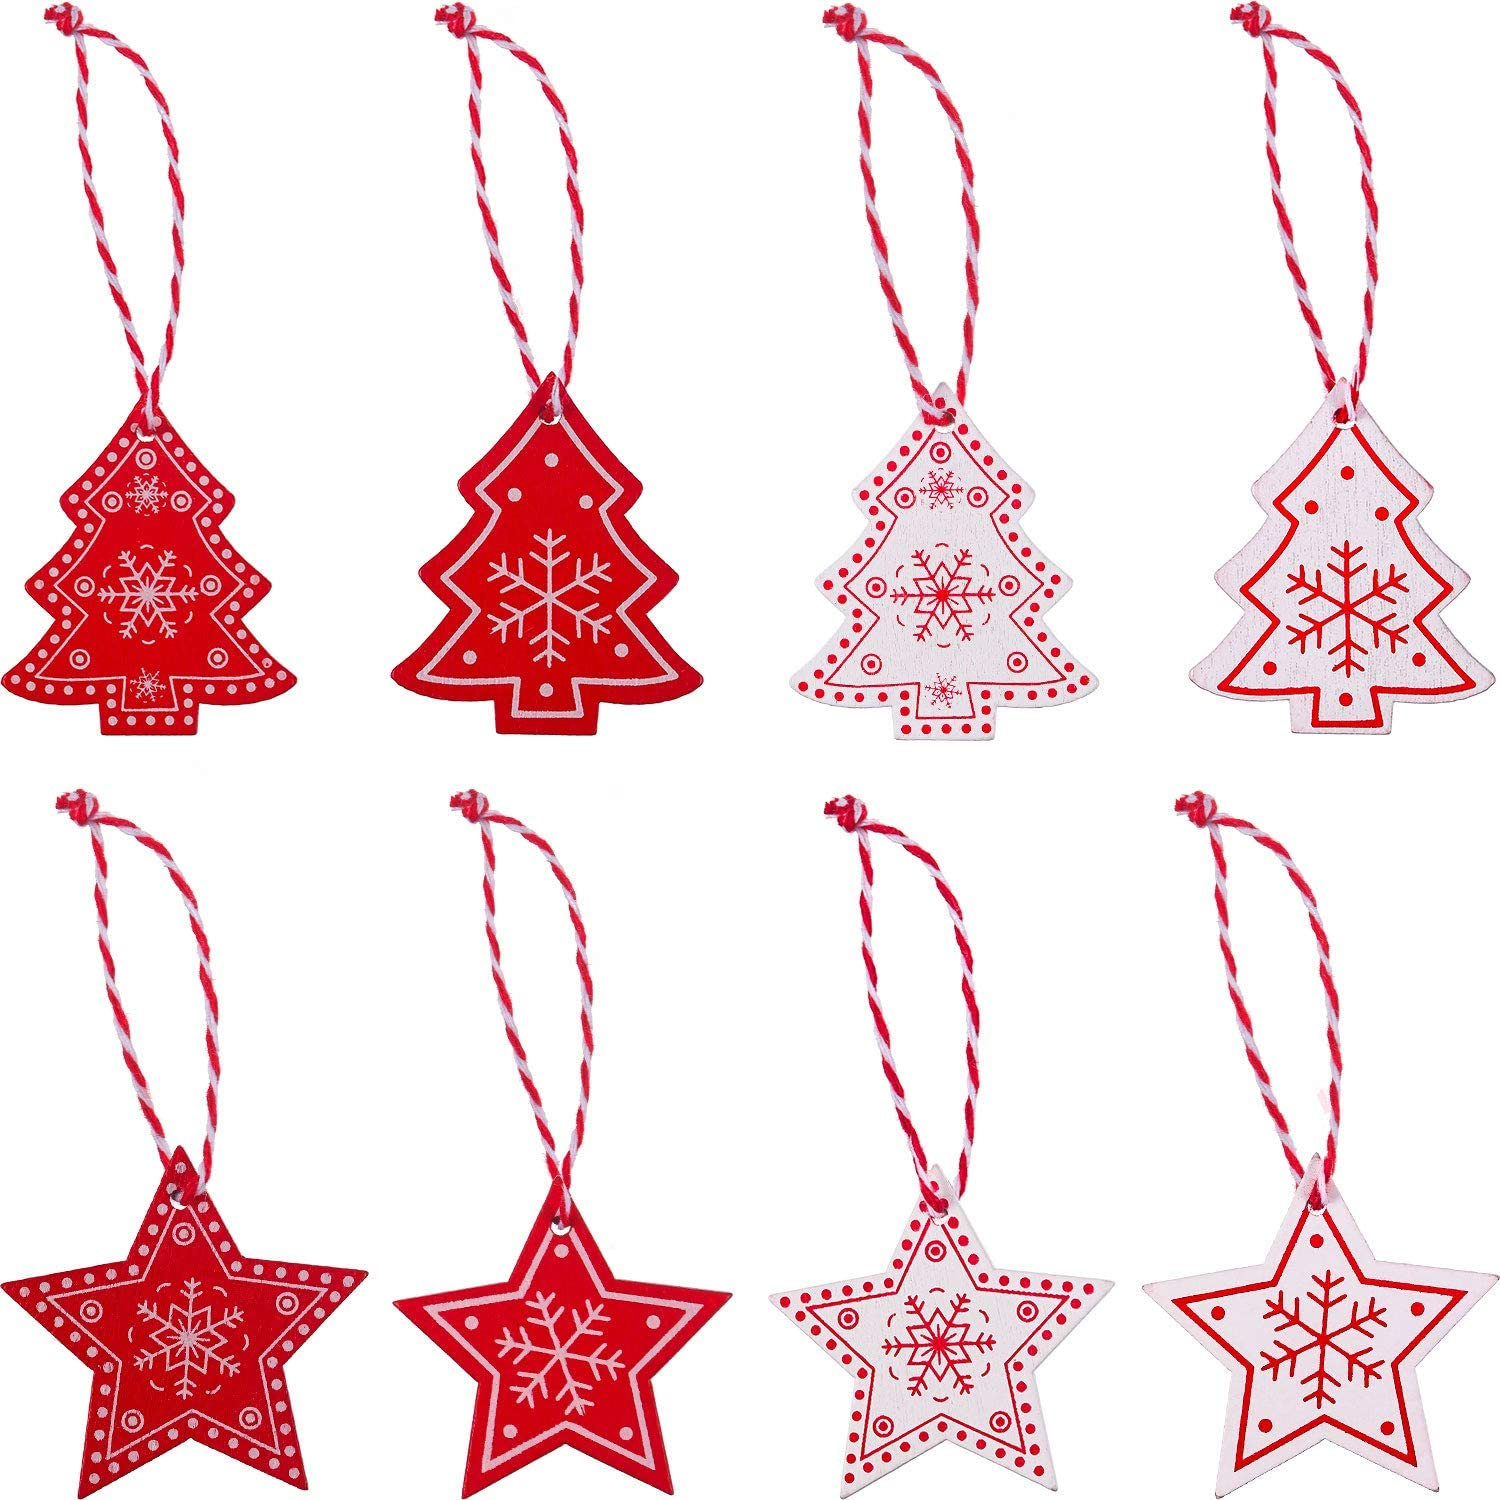 JOVITEC 32 Pieces ! Super beauty product restock quality top! Christmas Tree Wooden Orn Hangings Cheap bargain Decorations